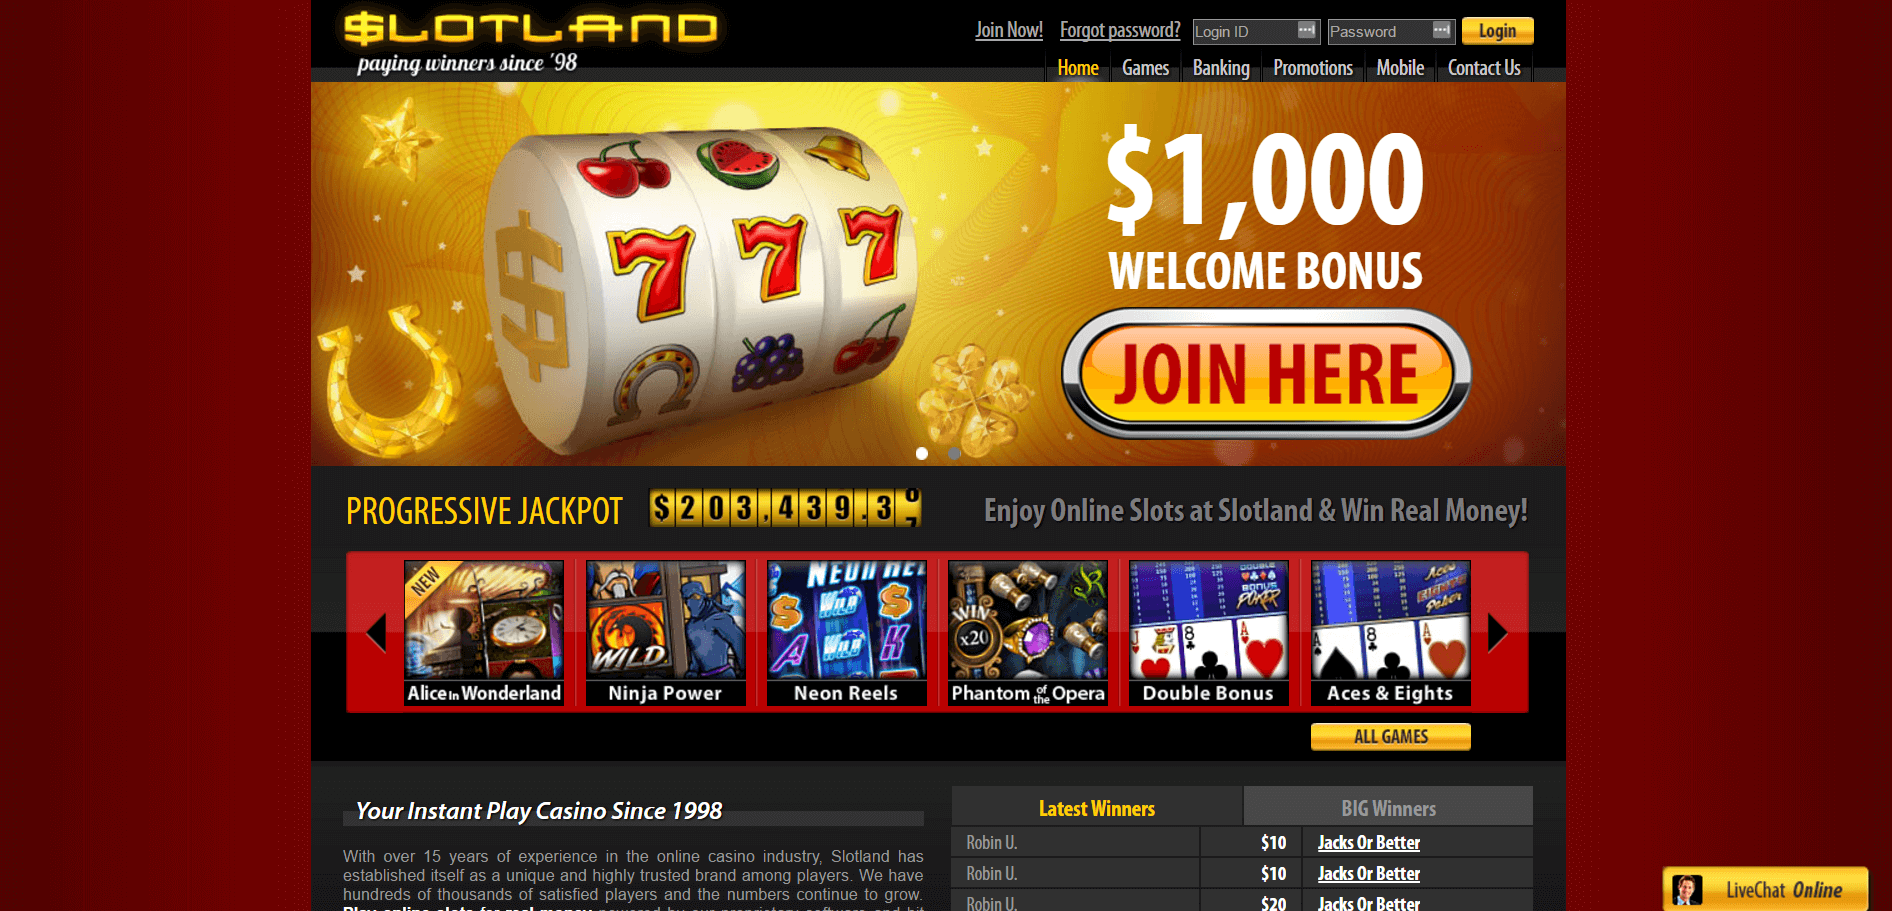 An image of the Slotland Casino Website home page